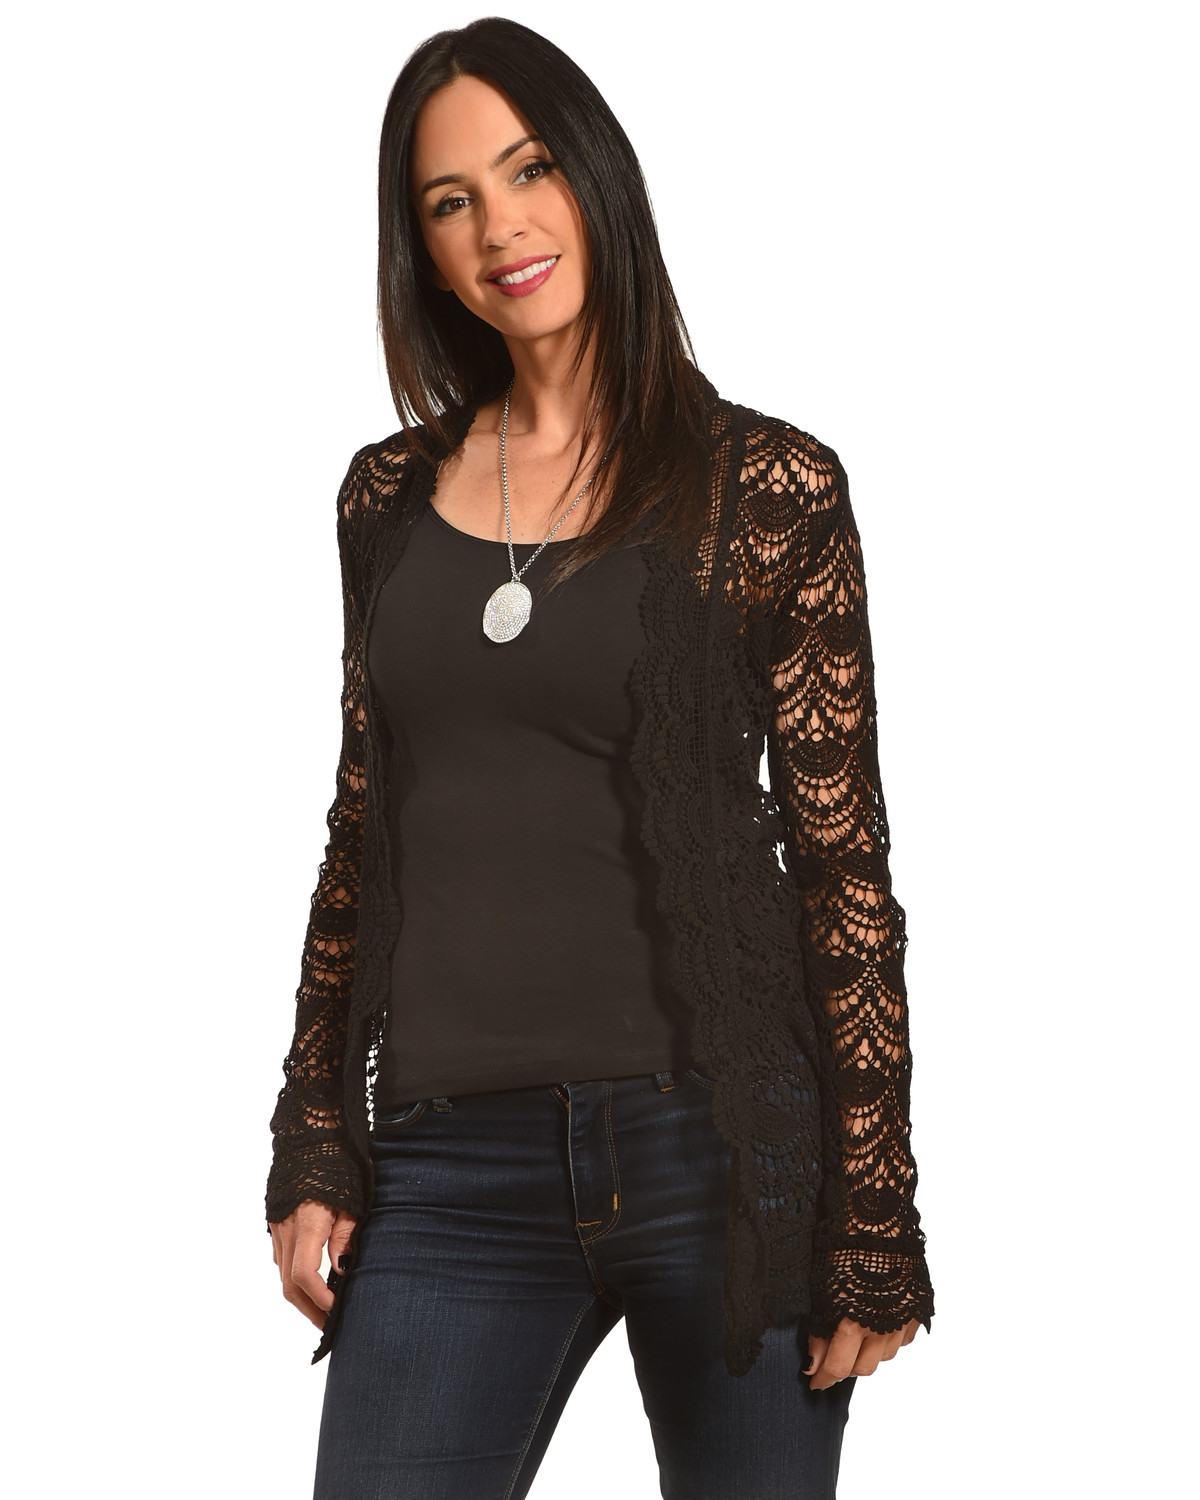 Young Essence Women's Long Sleeve Lace Cardigan - Country Outfitter